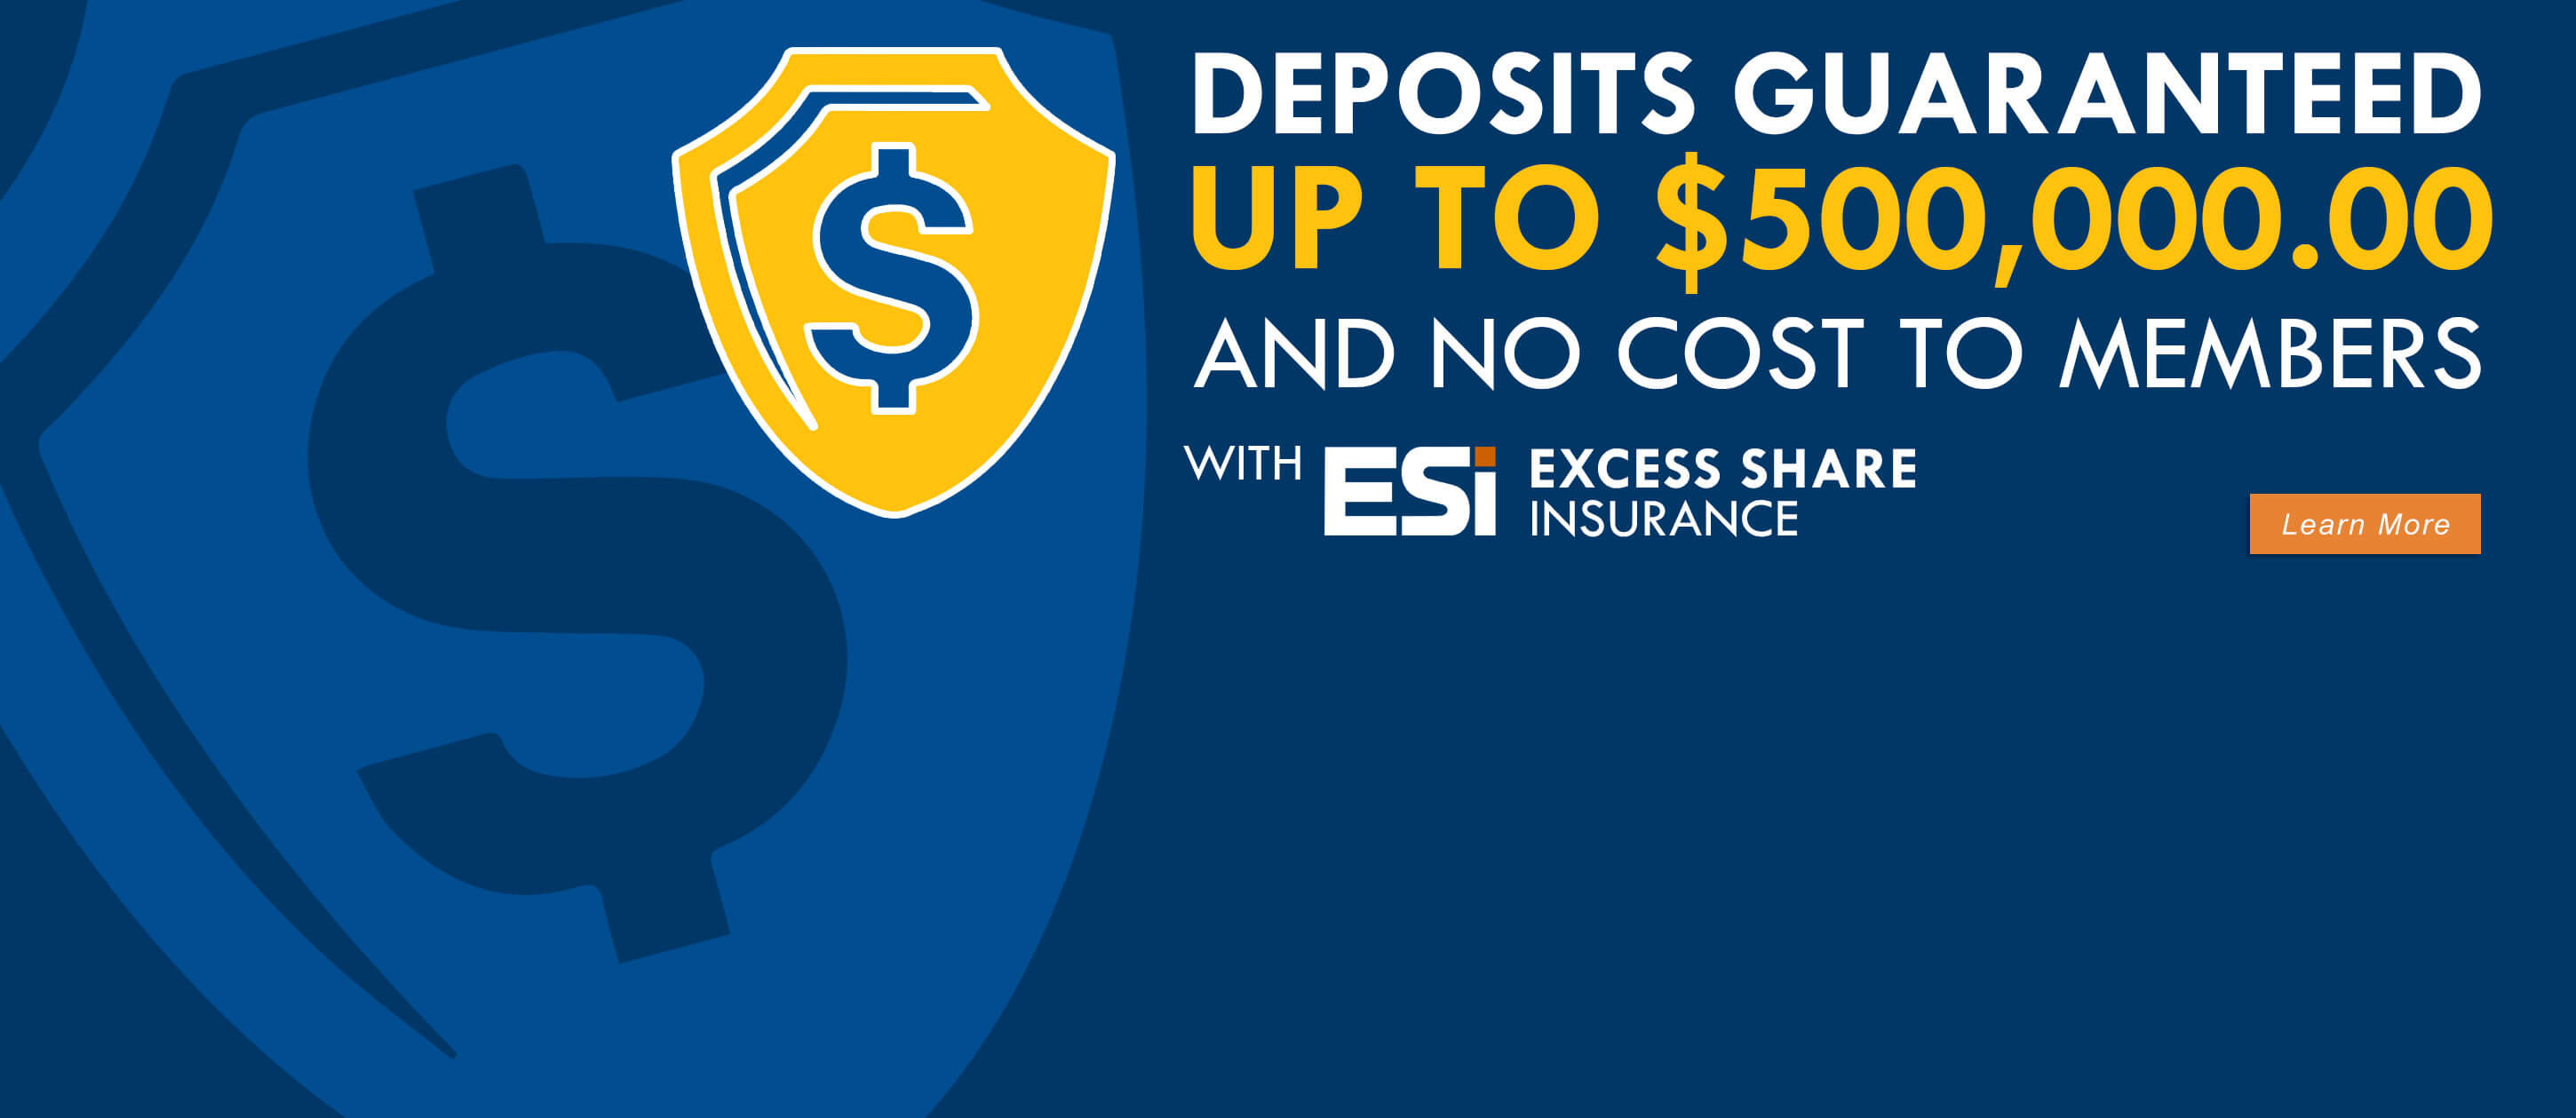 Deposits guaranteed up to $5000,000.00 and no cost to members. ESI Insurance. Learn More